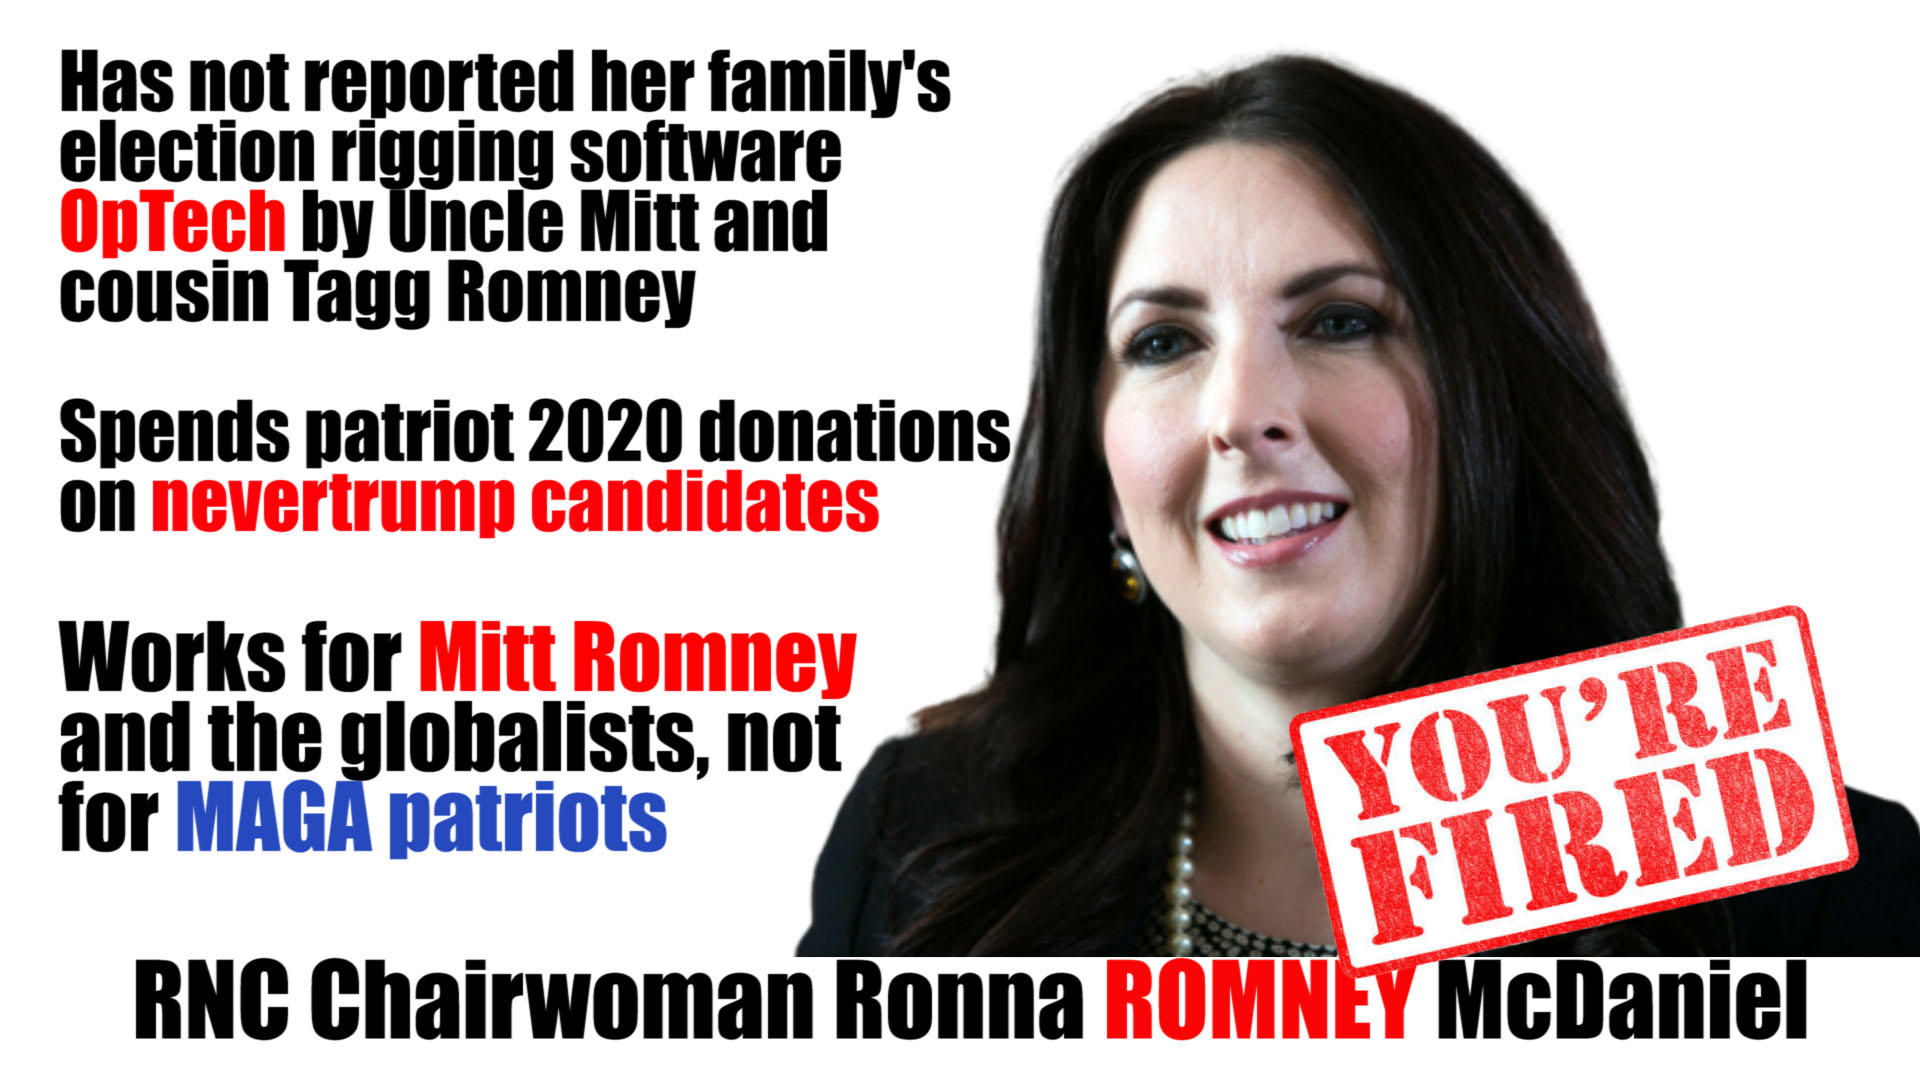 ronna romney fired